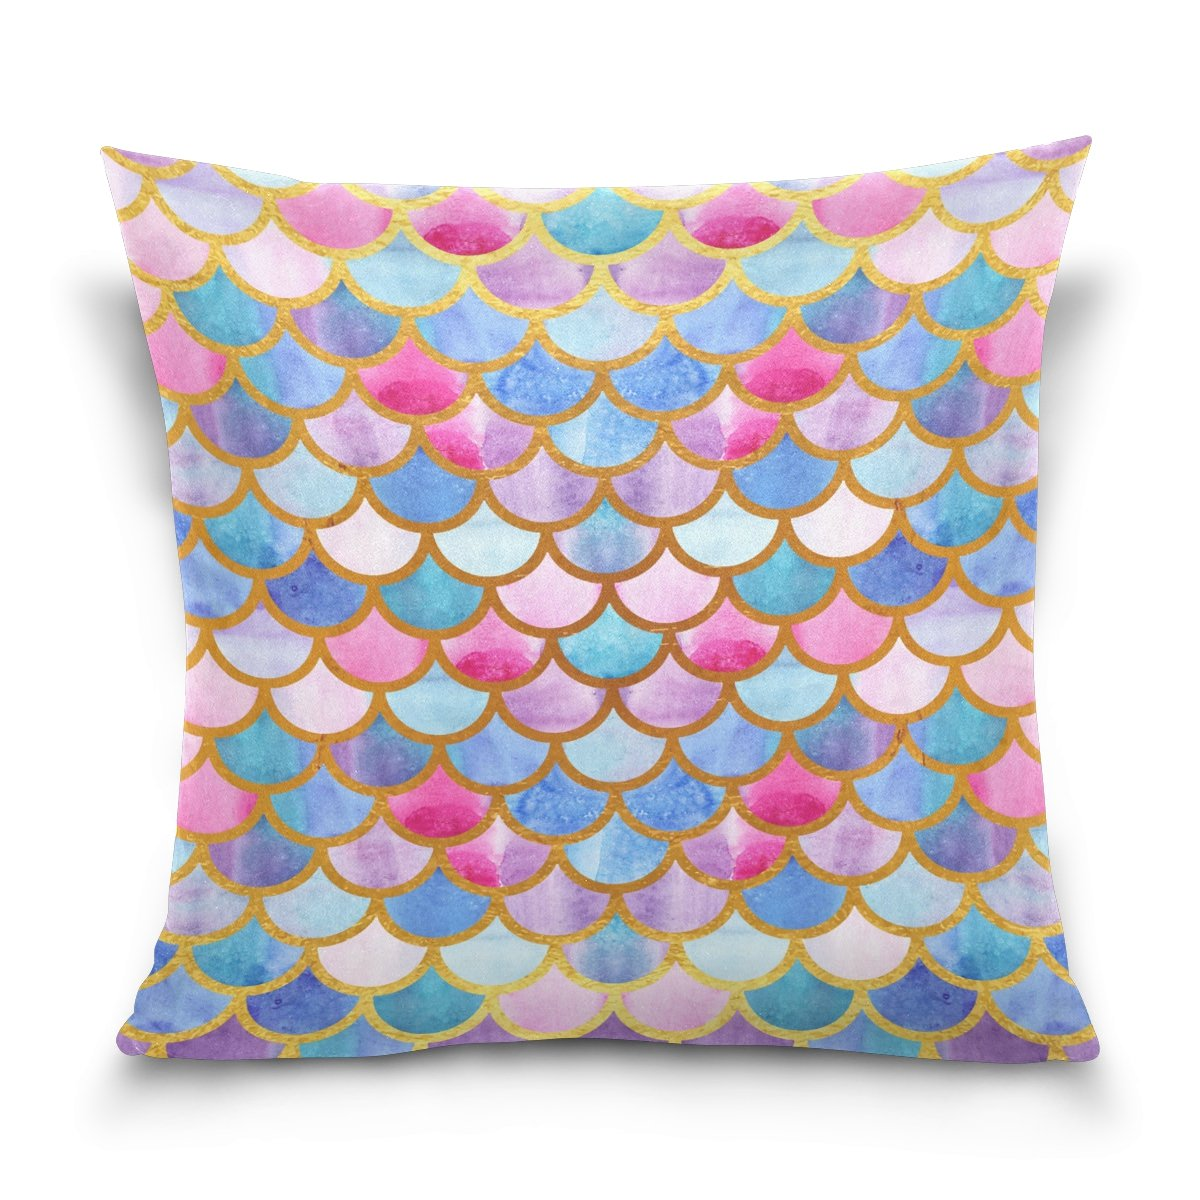 ALAZA Rainbow Mermaid Scale Cotton Pillowcase 20 X 20 Inches Twin Sides, Colorful Fish Scale Pillow Case Sham Cover Protector Decorative for Home Hotel Couch Ded